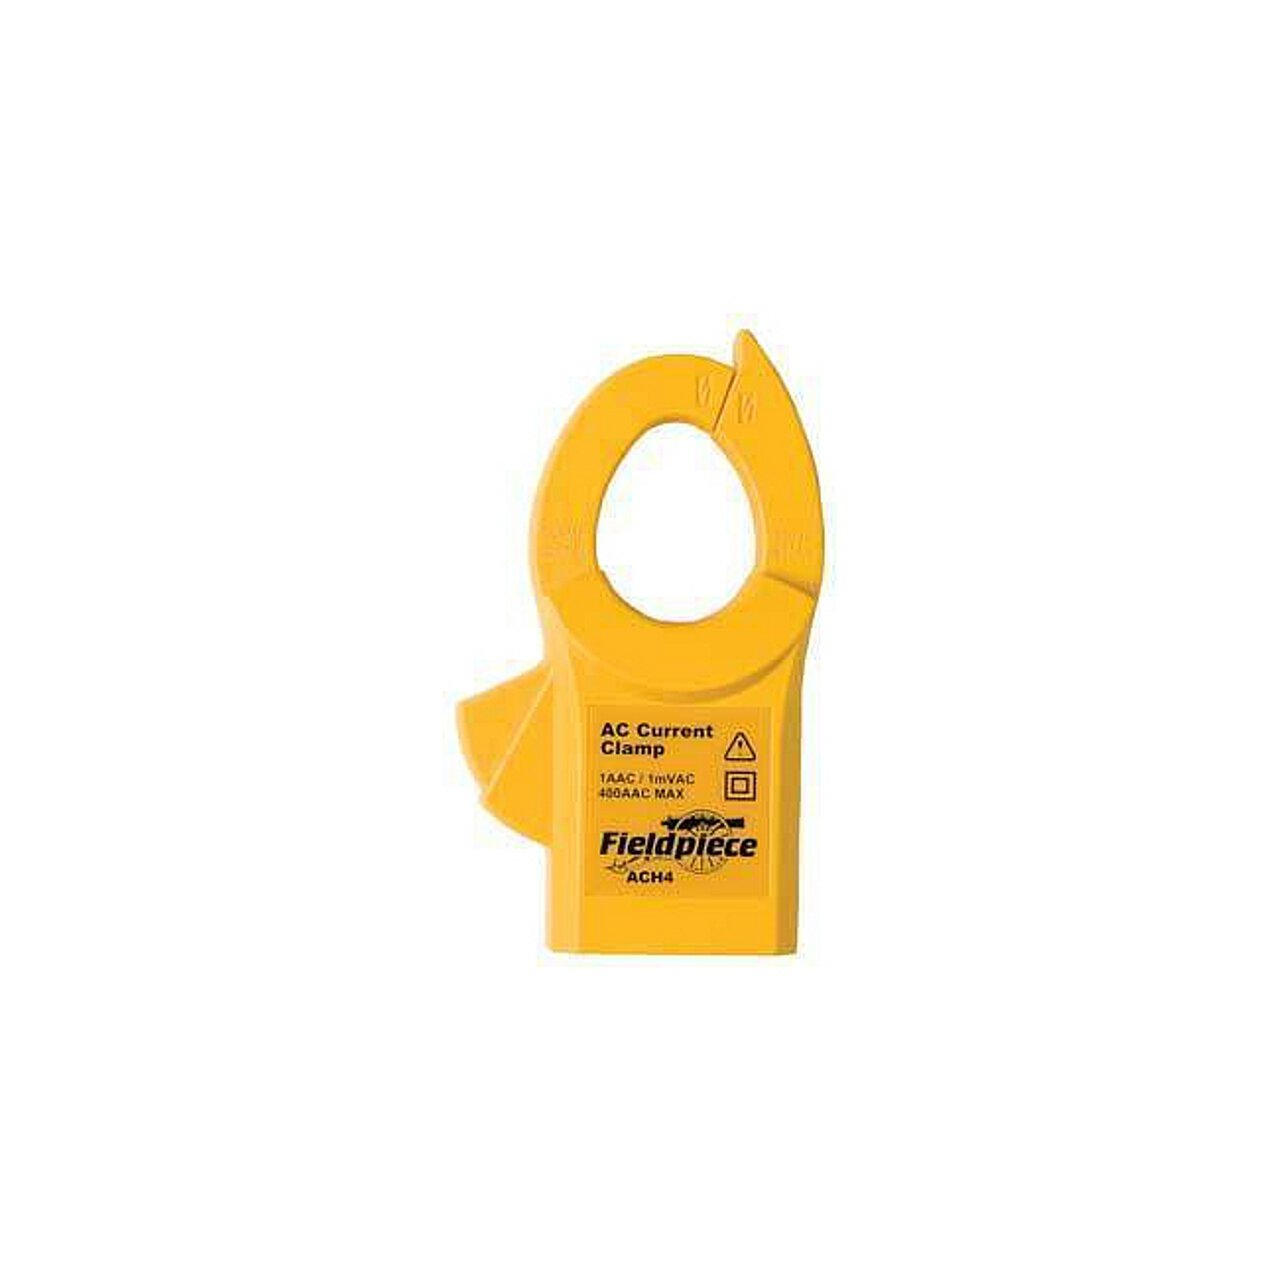 Fieldpiece ACH4 400A Amp Clamp Accessory Head